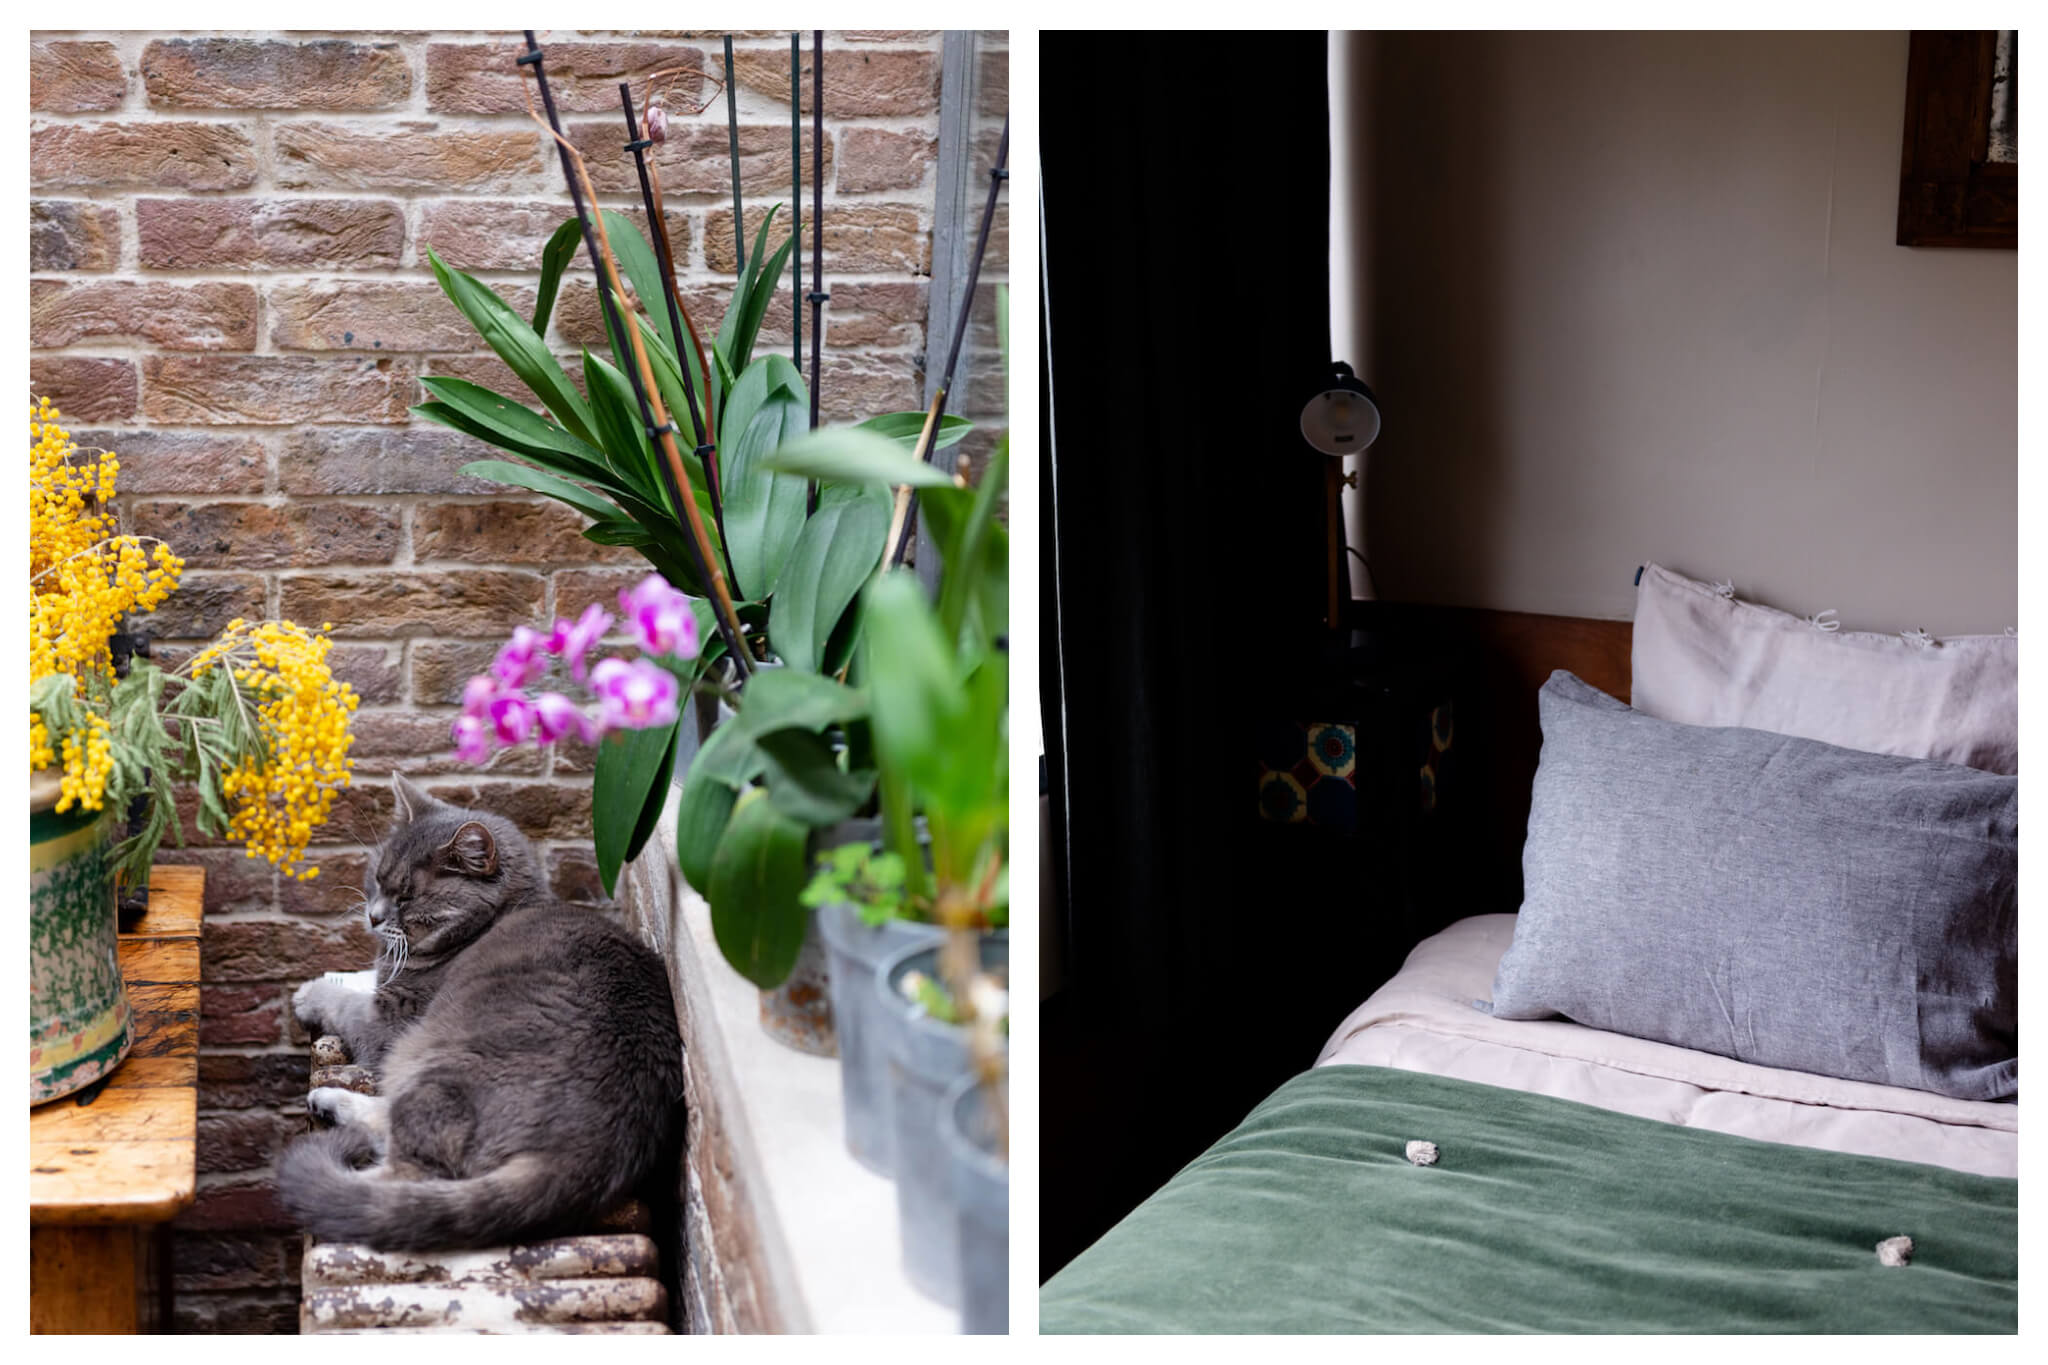 Left: A gray cat sits on a radiator surrounded by plants and flowers t Le 66 in Paris, Right: A close-up shot of a bed at Le 66 in Paris, decorated with pillows and  green blanket